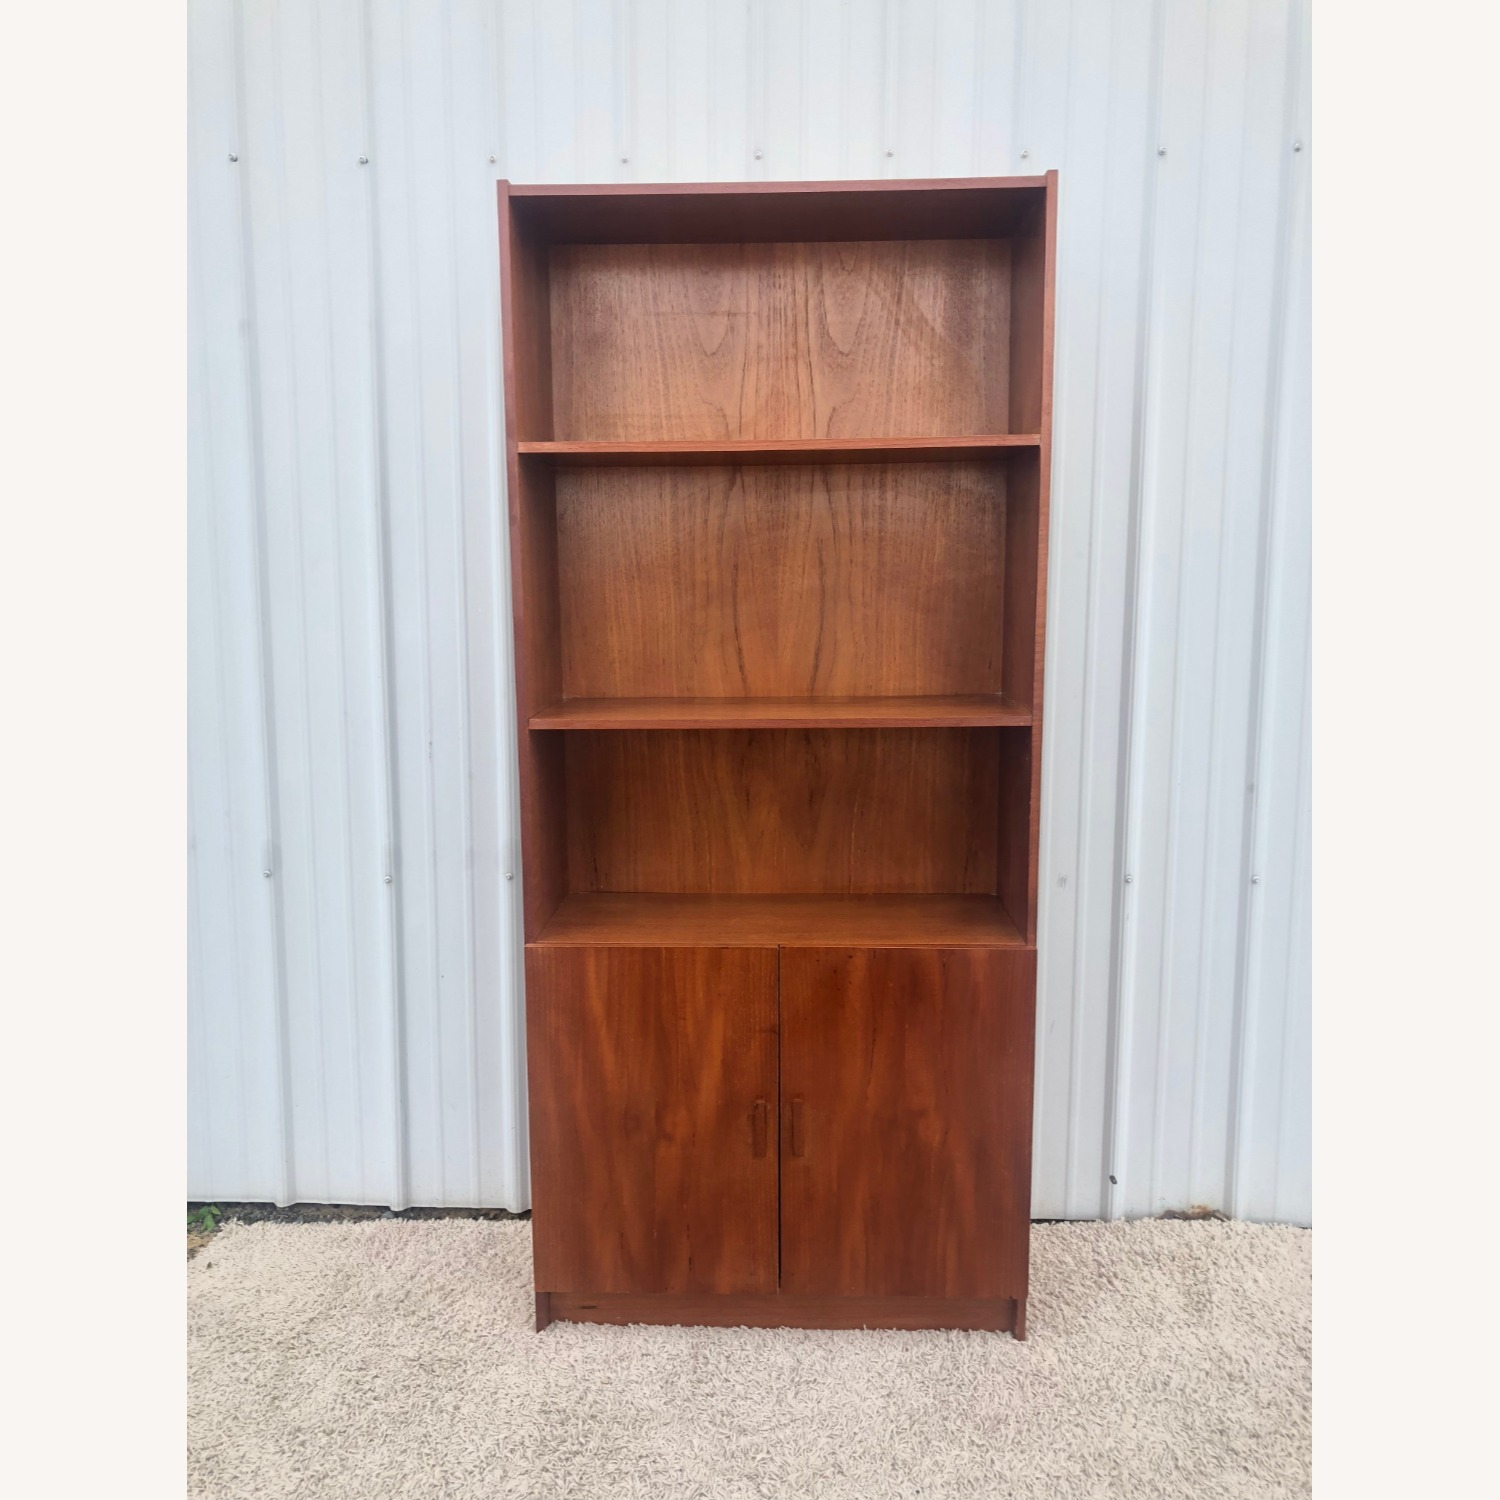 Danish Modern Teak Shelving with Cabinet - image-1